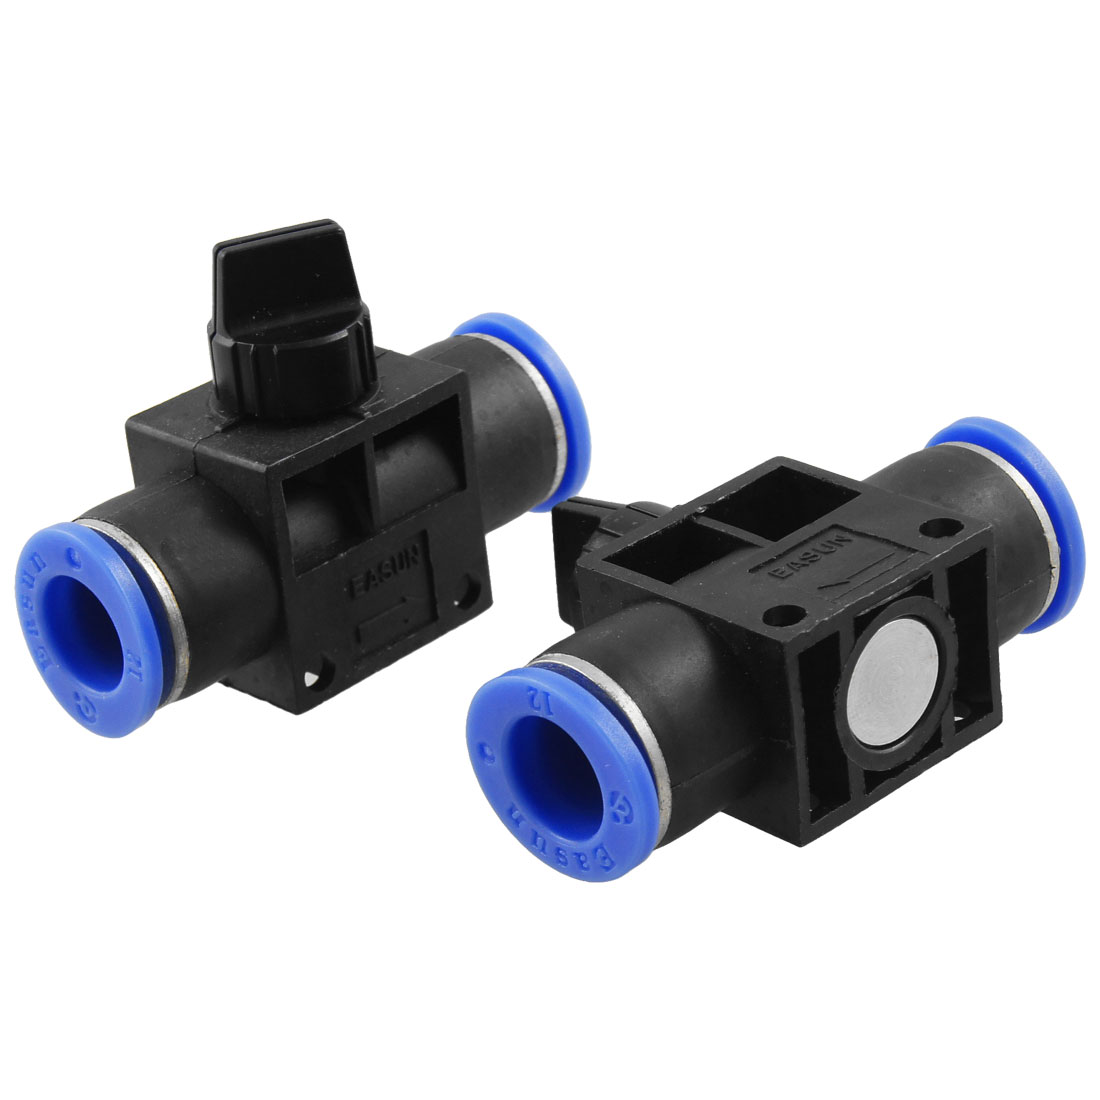 2 Pcs 12mm to 12mm One Touch Fitting Pneumatic Connector Hand Valve